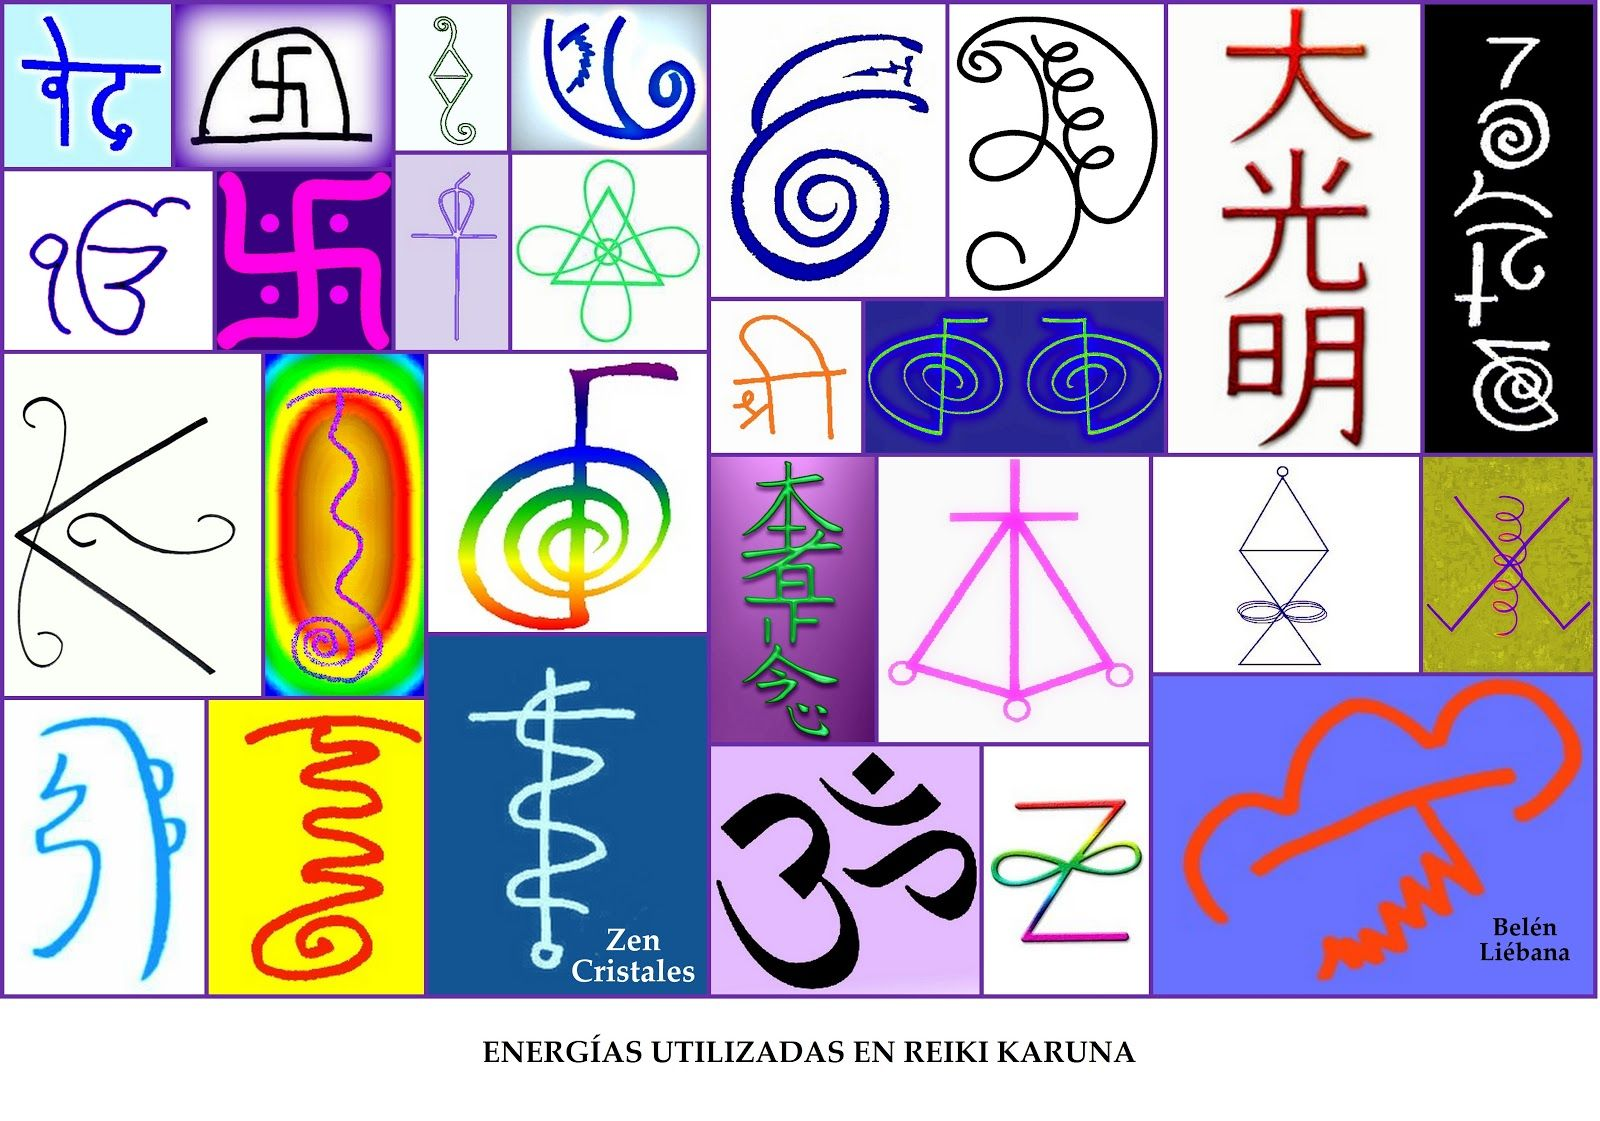 Httplearn reikidigimkts who knew but glad i do i need recent studies have shown that reiki can provide physical and psychological improvements to patients suffering with stress diet and lifestyle related buycottarizona Images